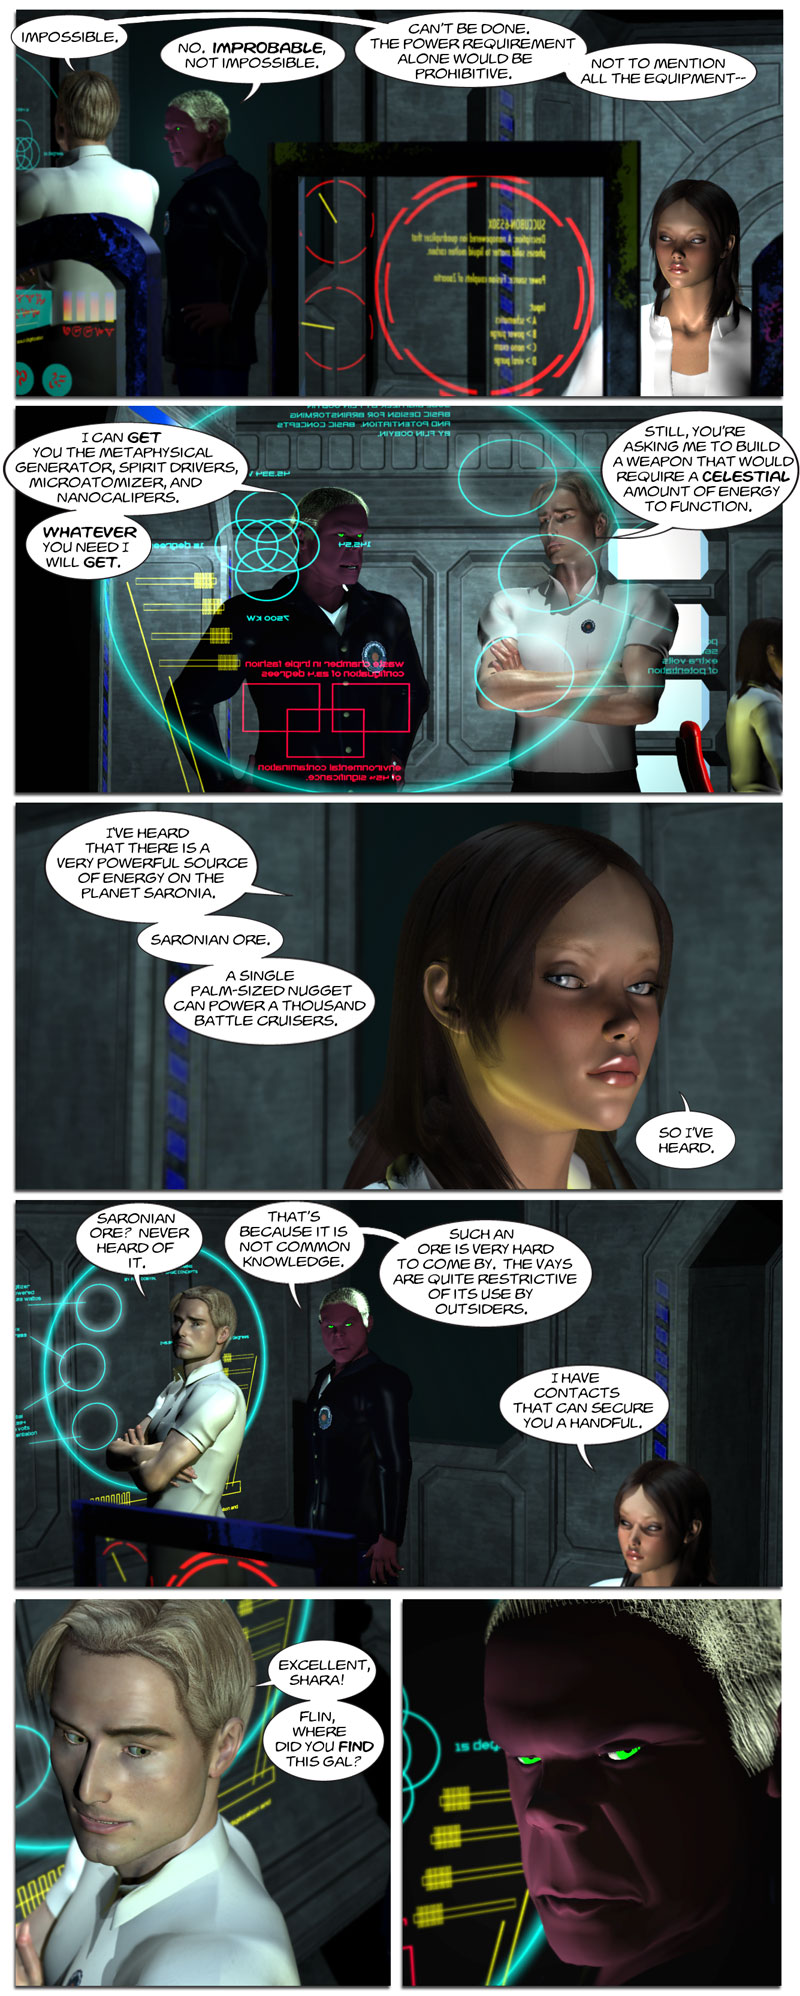 Chapter 4, page 20 – Flin suspects something